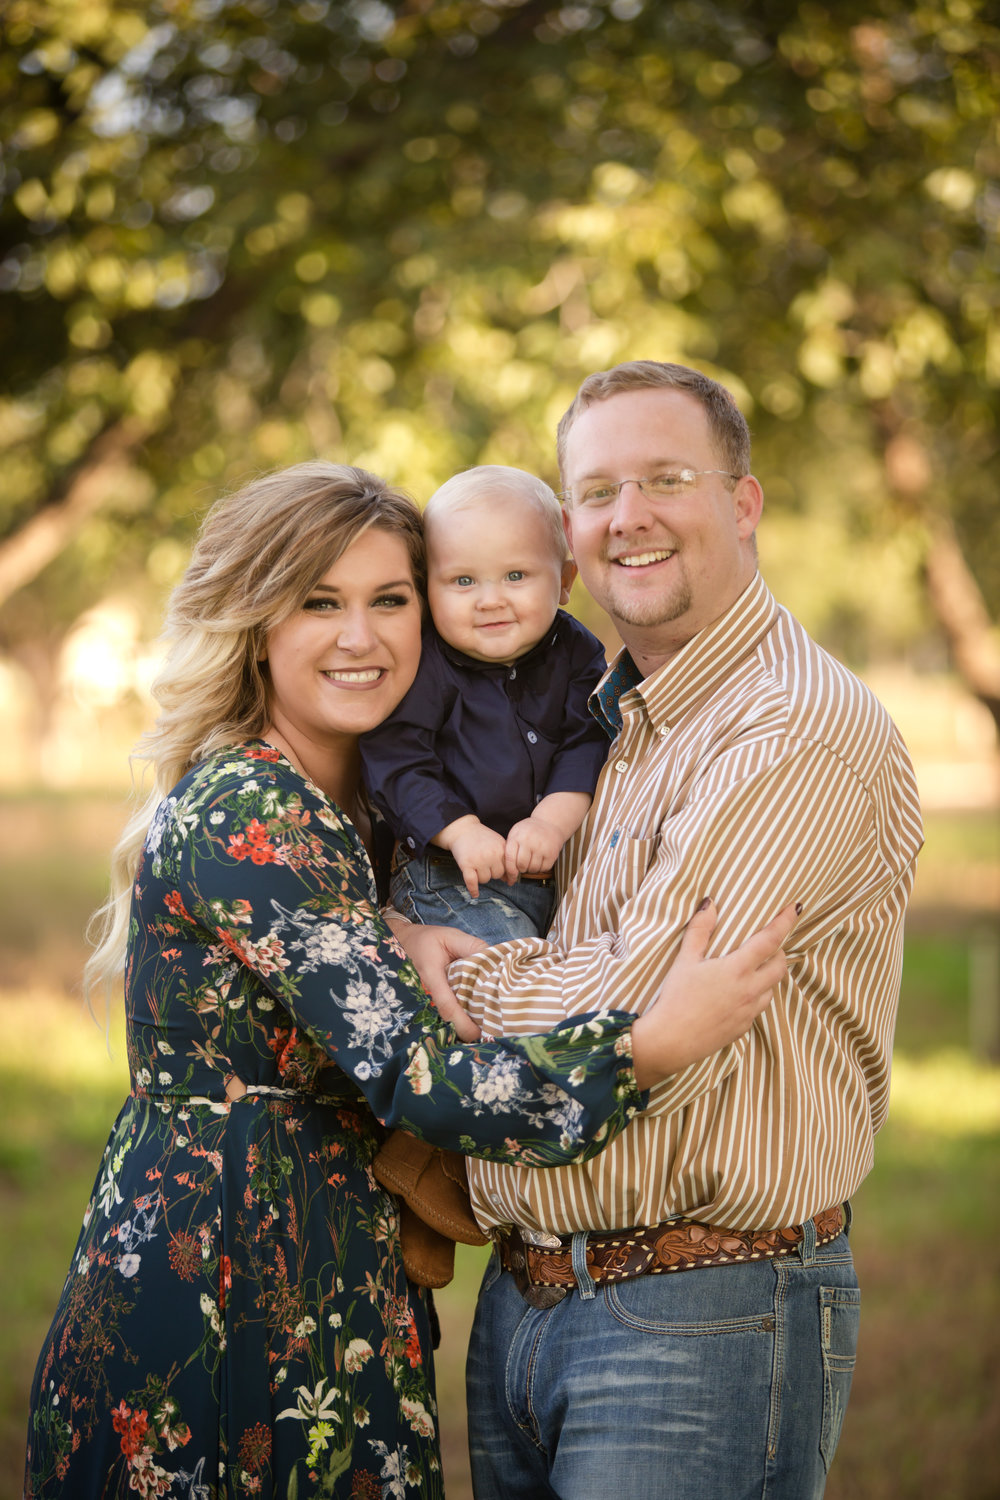 Marble_Falls_Photographer_Horseshoe_Bay_Stokes_Family04.jpg